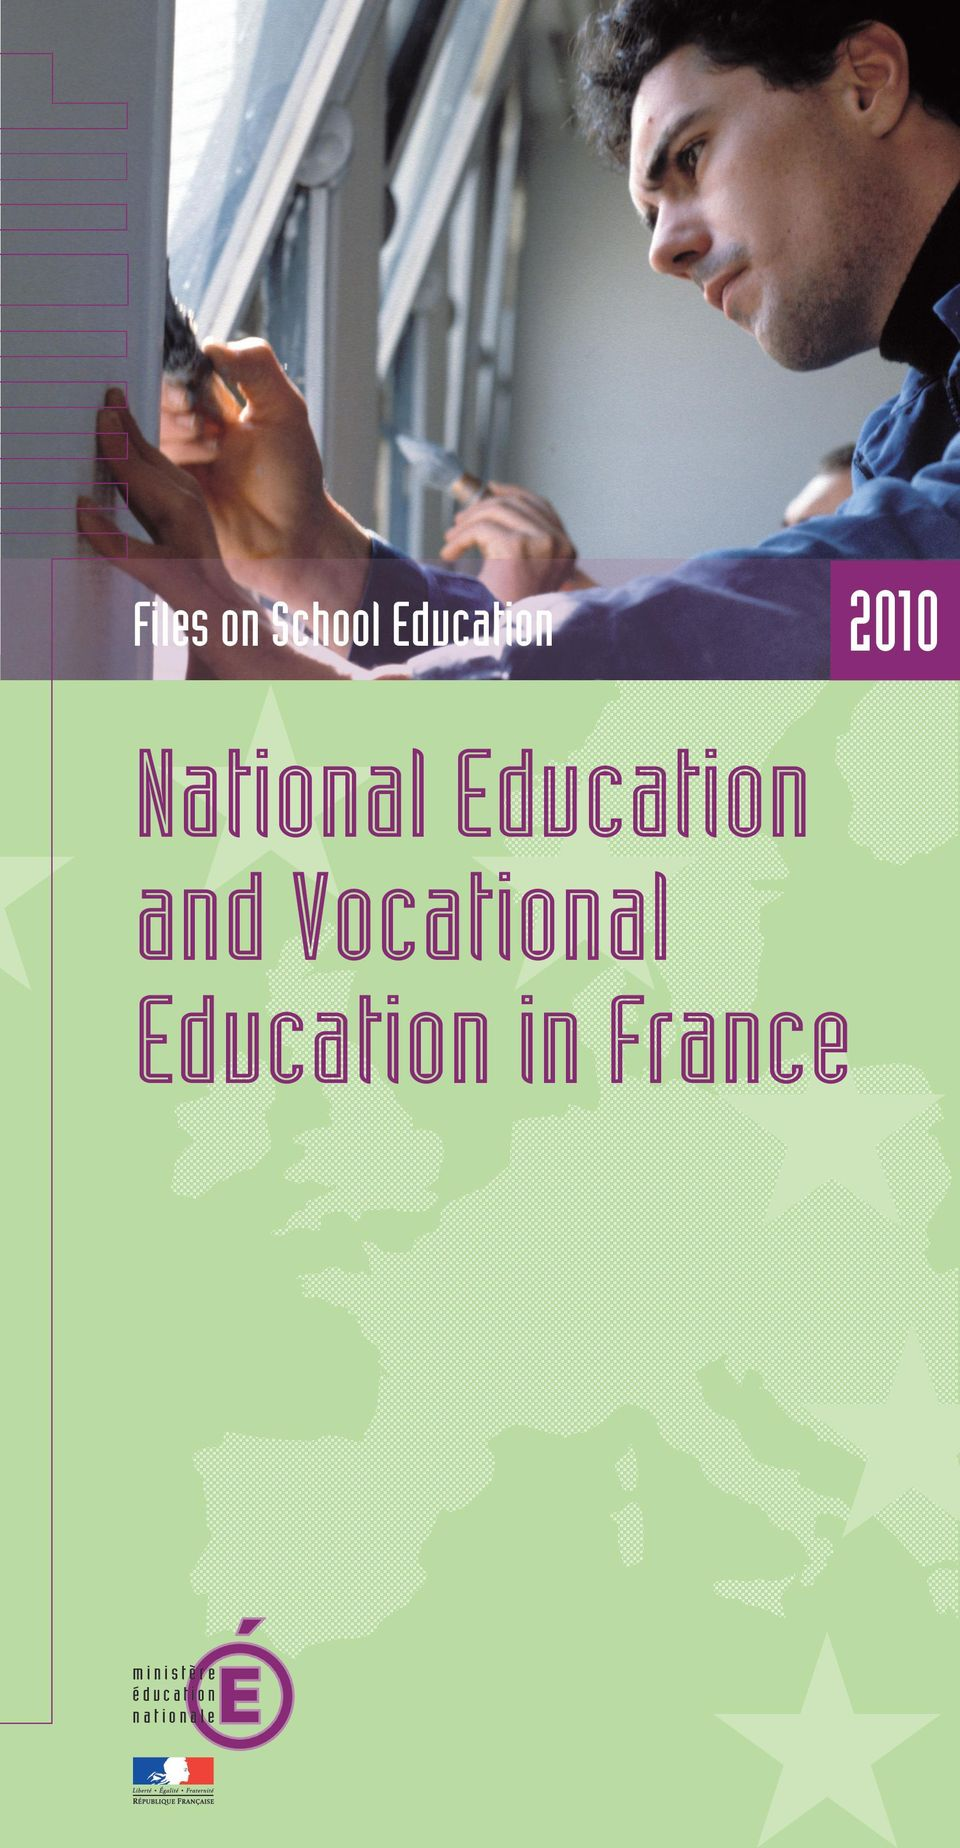 Vocational Education in